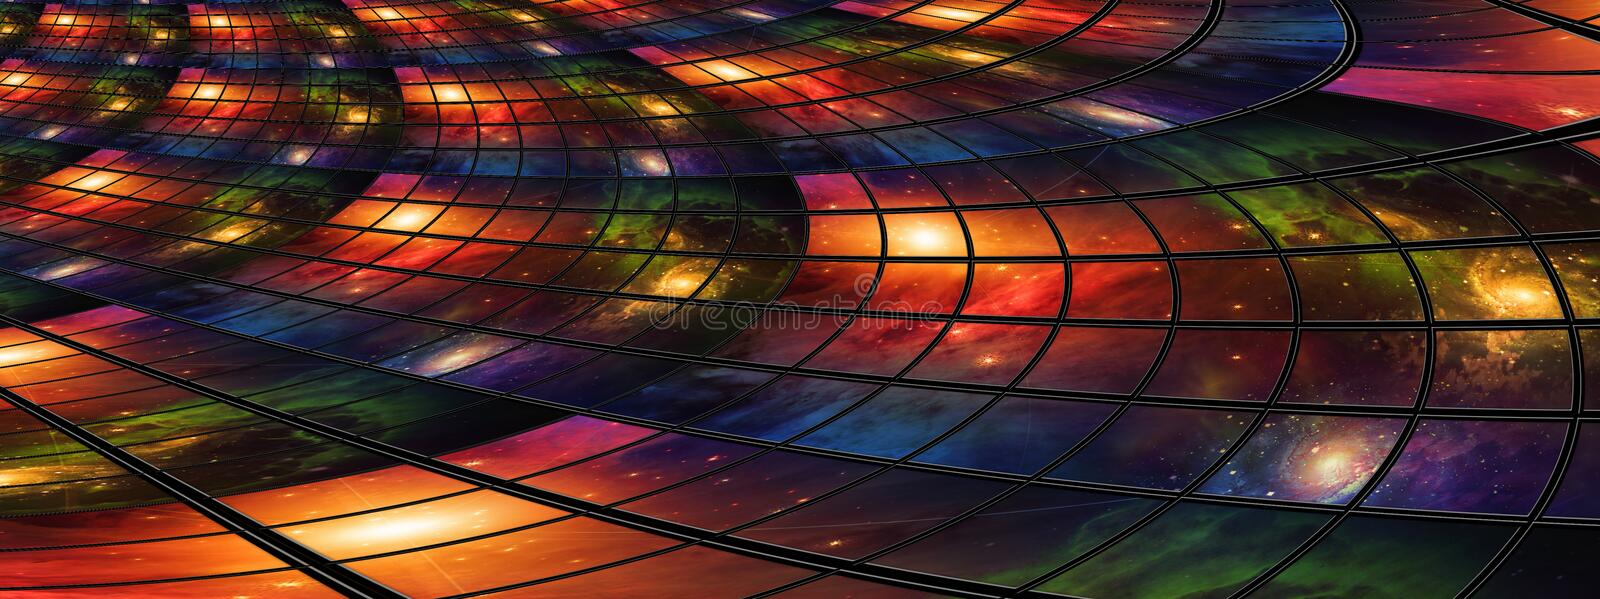 Screens Abstract. Video and image screens abstract royalty free illustration